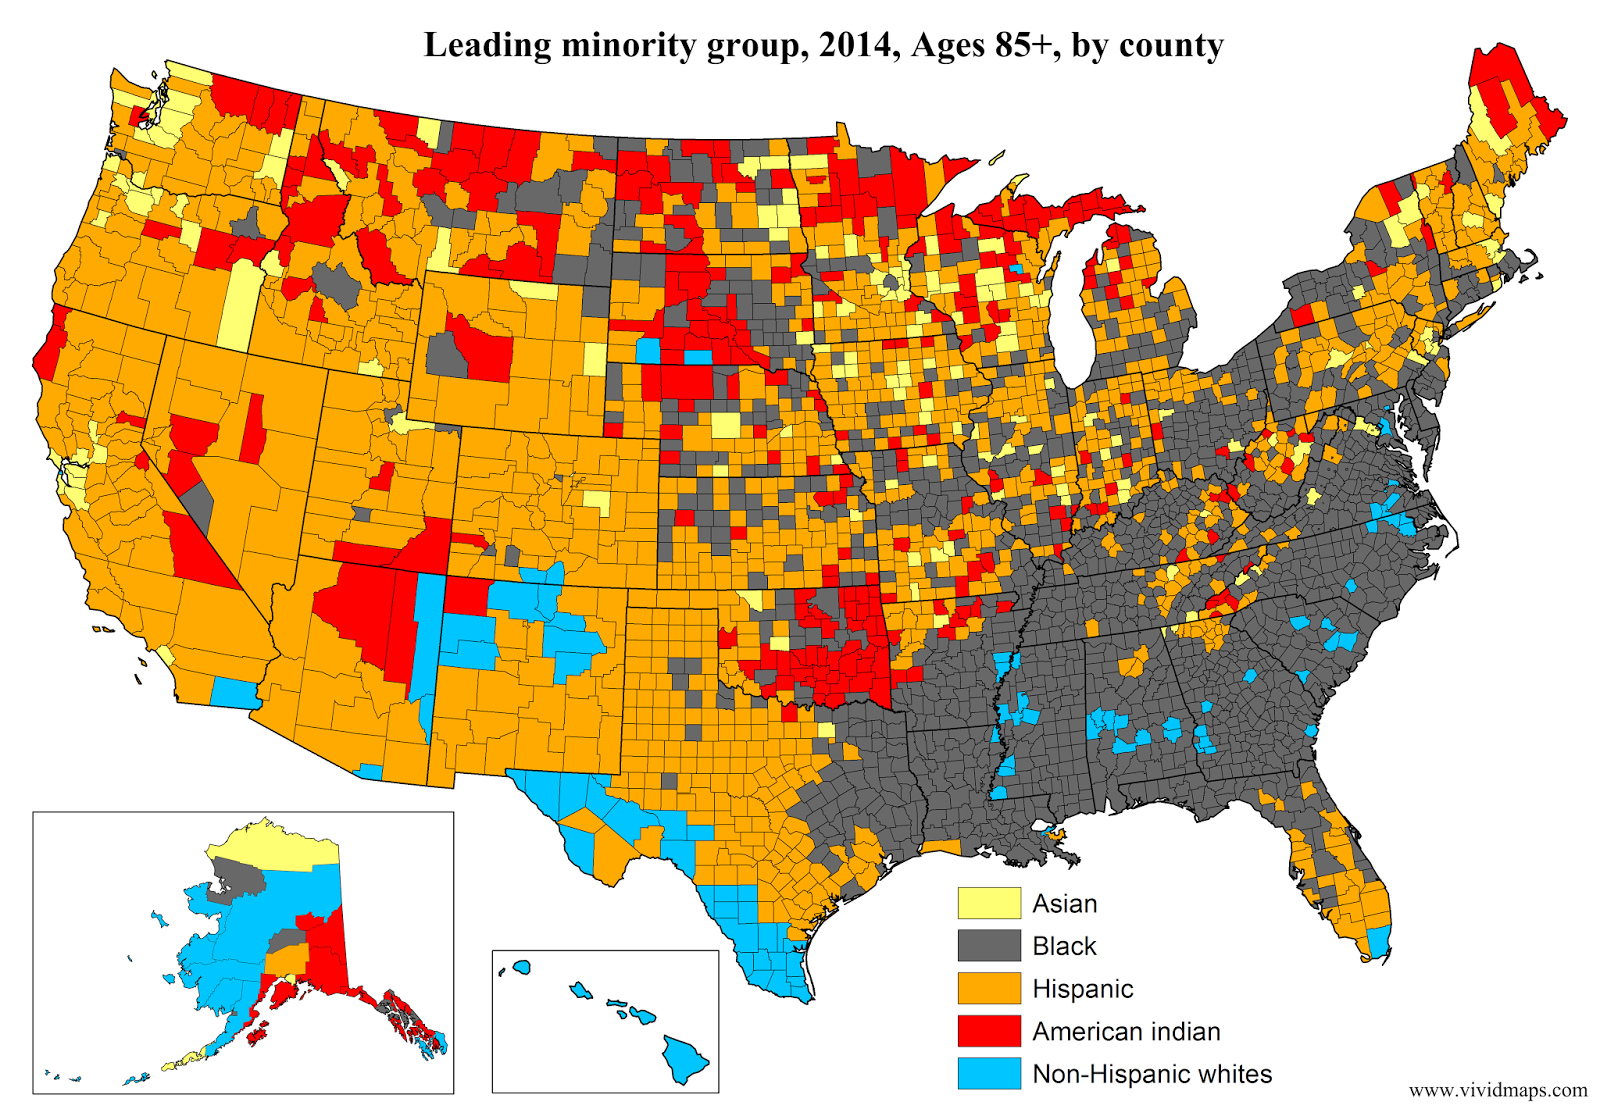 Leading minority group, Ages 85+, by county